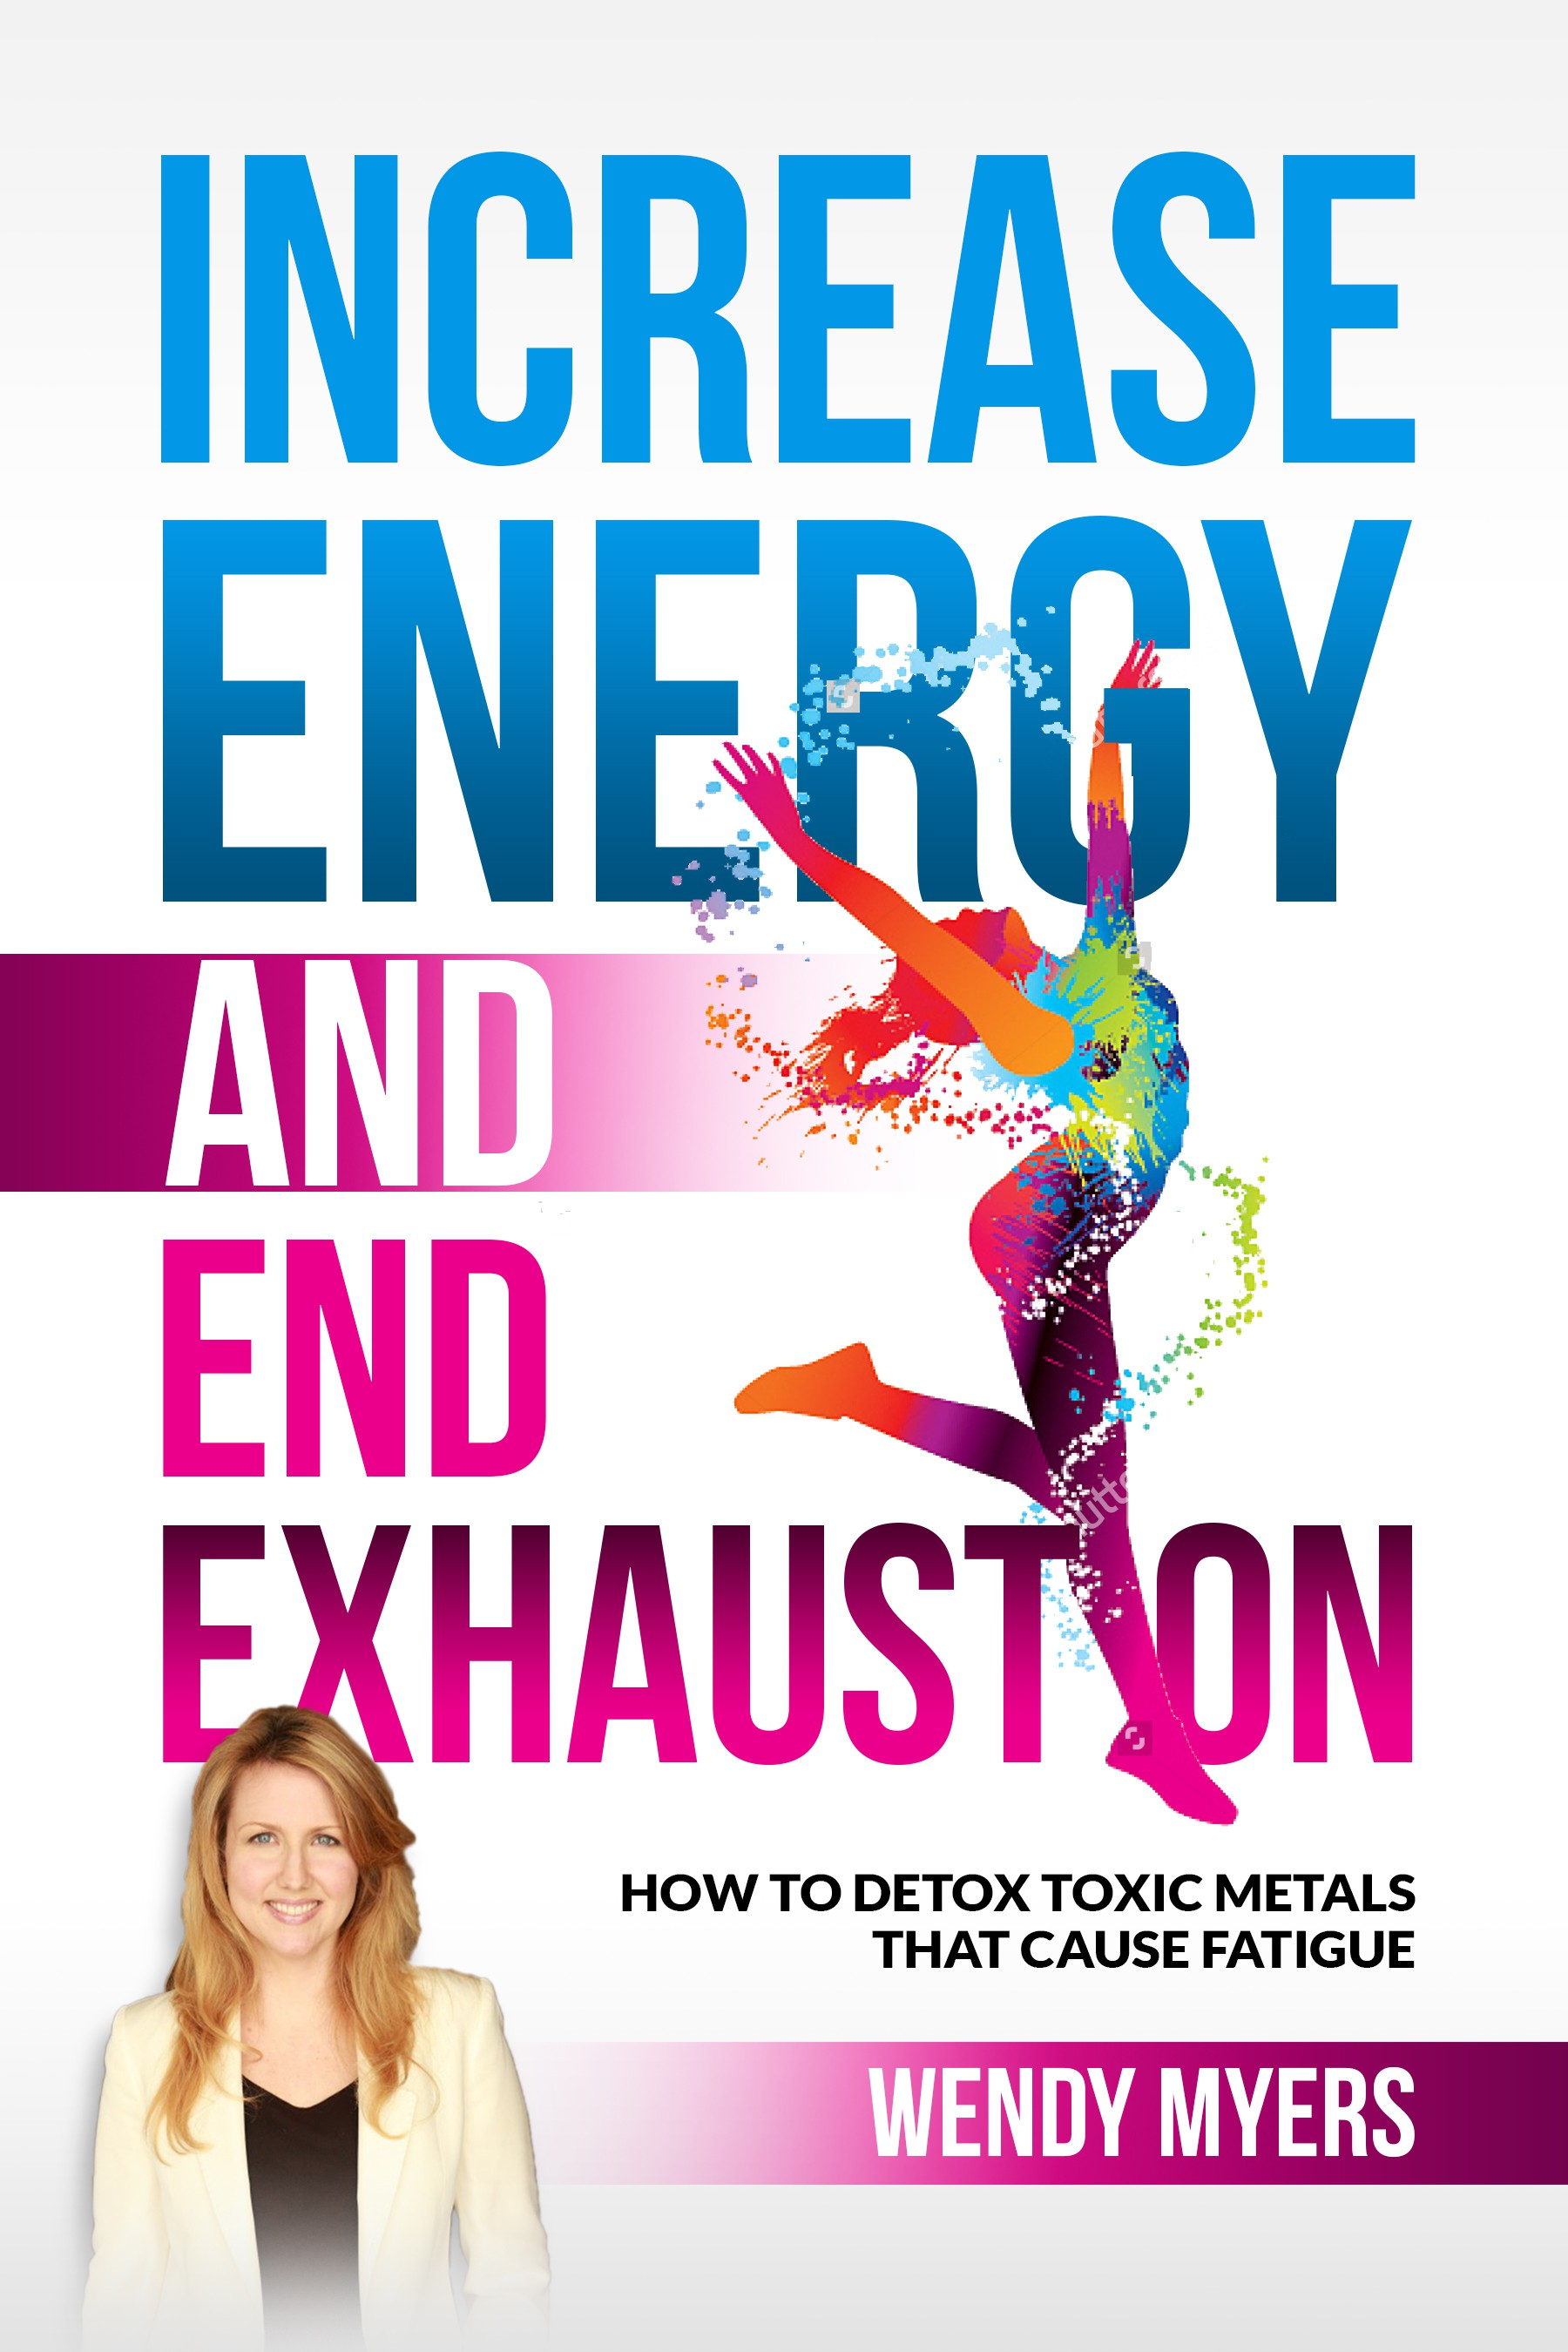 Toxic Metals that Cause Fatigue Book Cover